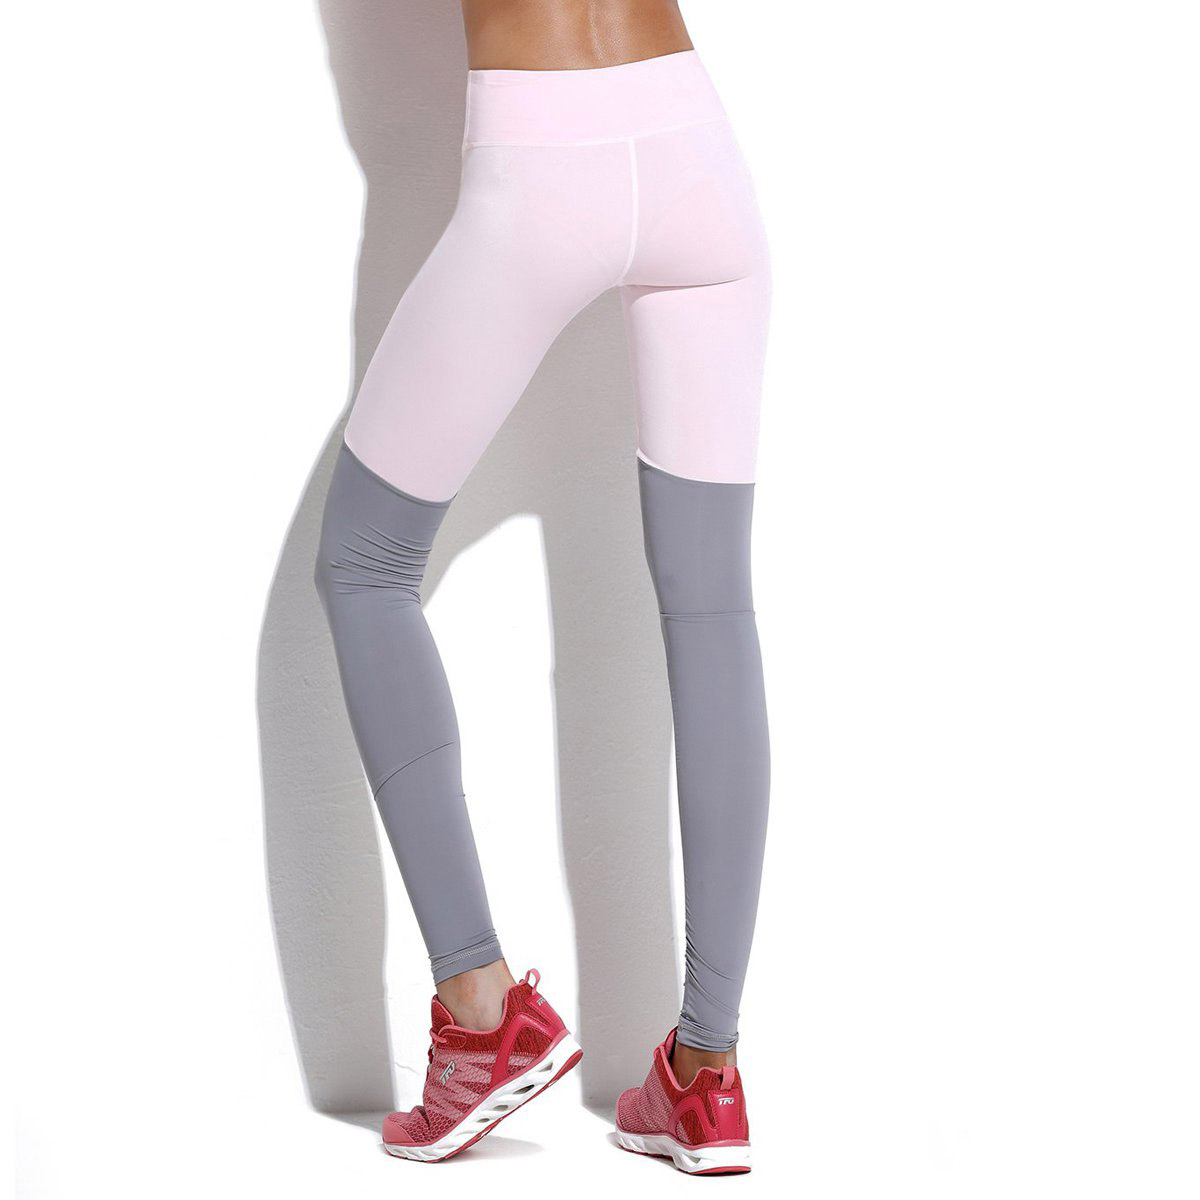 Moisture Absorption And Perspiration Female Model Fitness Exercise Tight Foot Pants